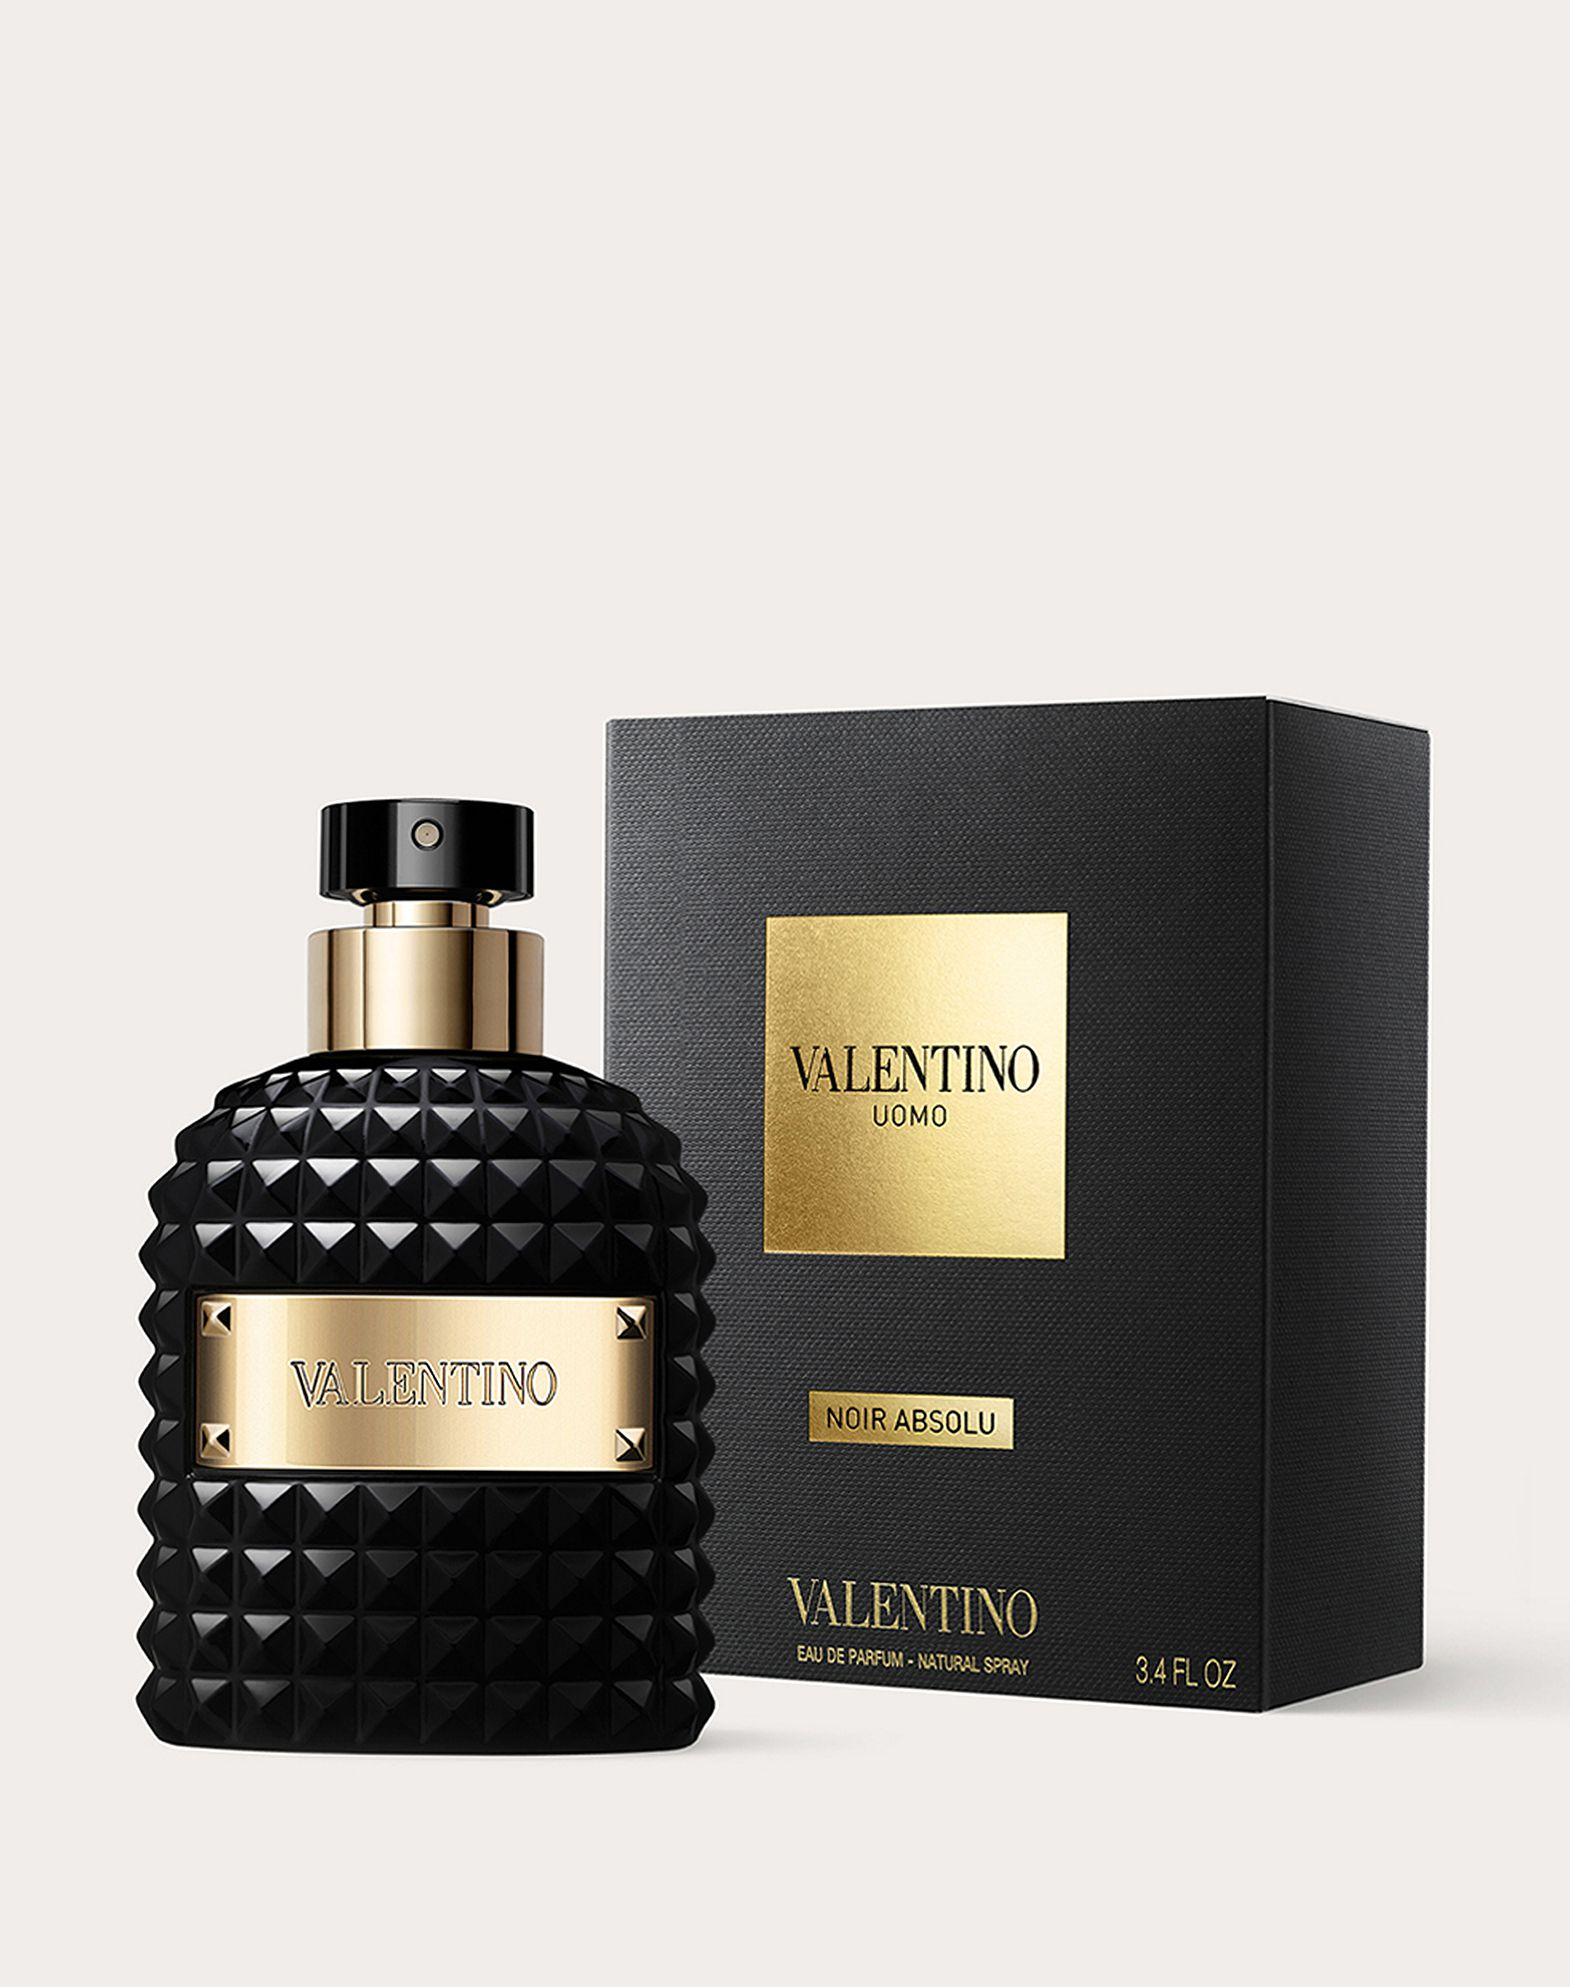 VALENTINO FRAGRANZE VALENTINO UOMO NOIR ABSOLU EDP 100ML FRAGRANZE U r